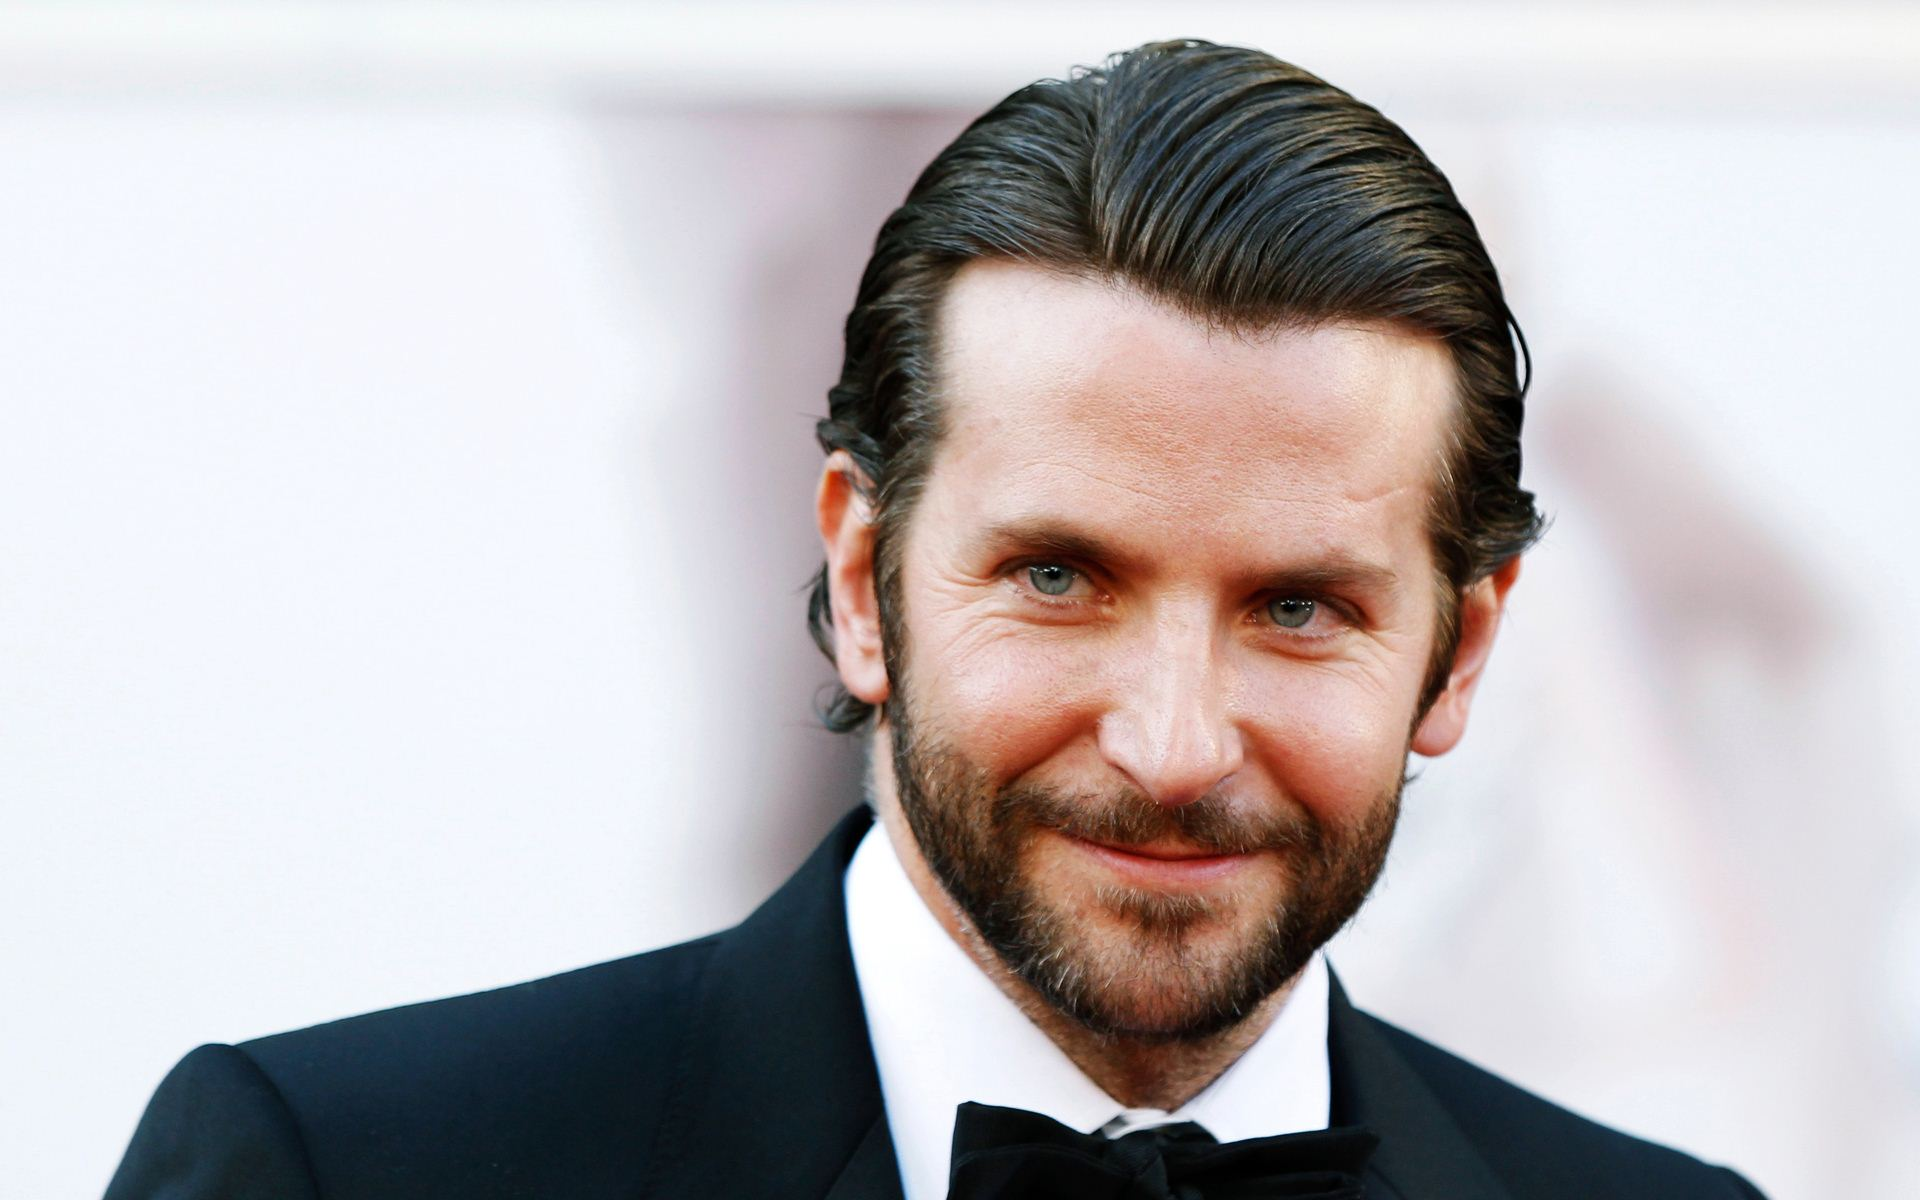 bradley cooper 2014 wallpaper high definition high